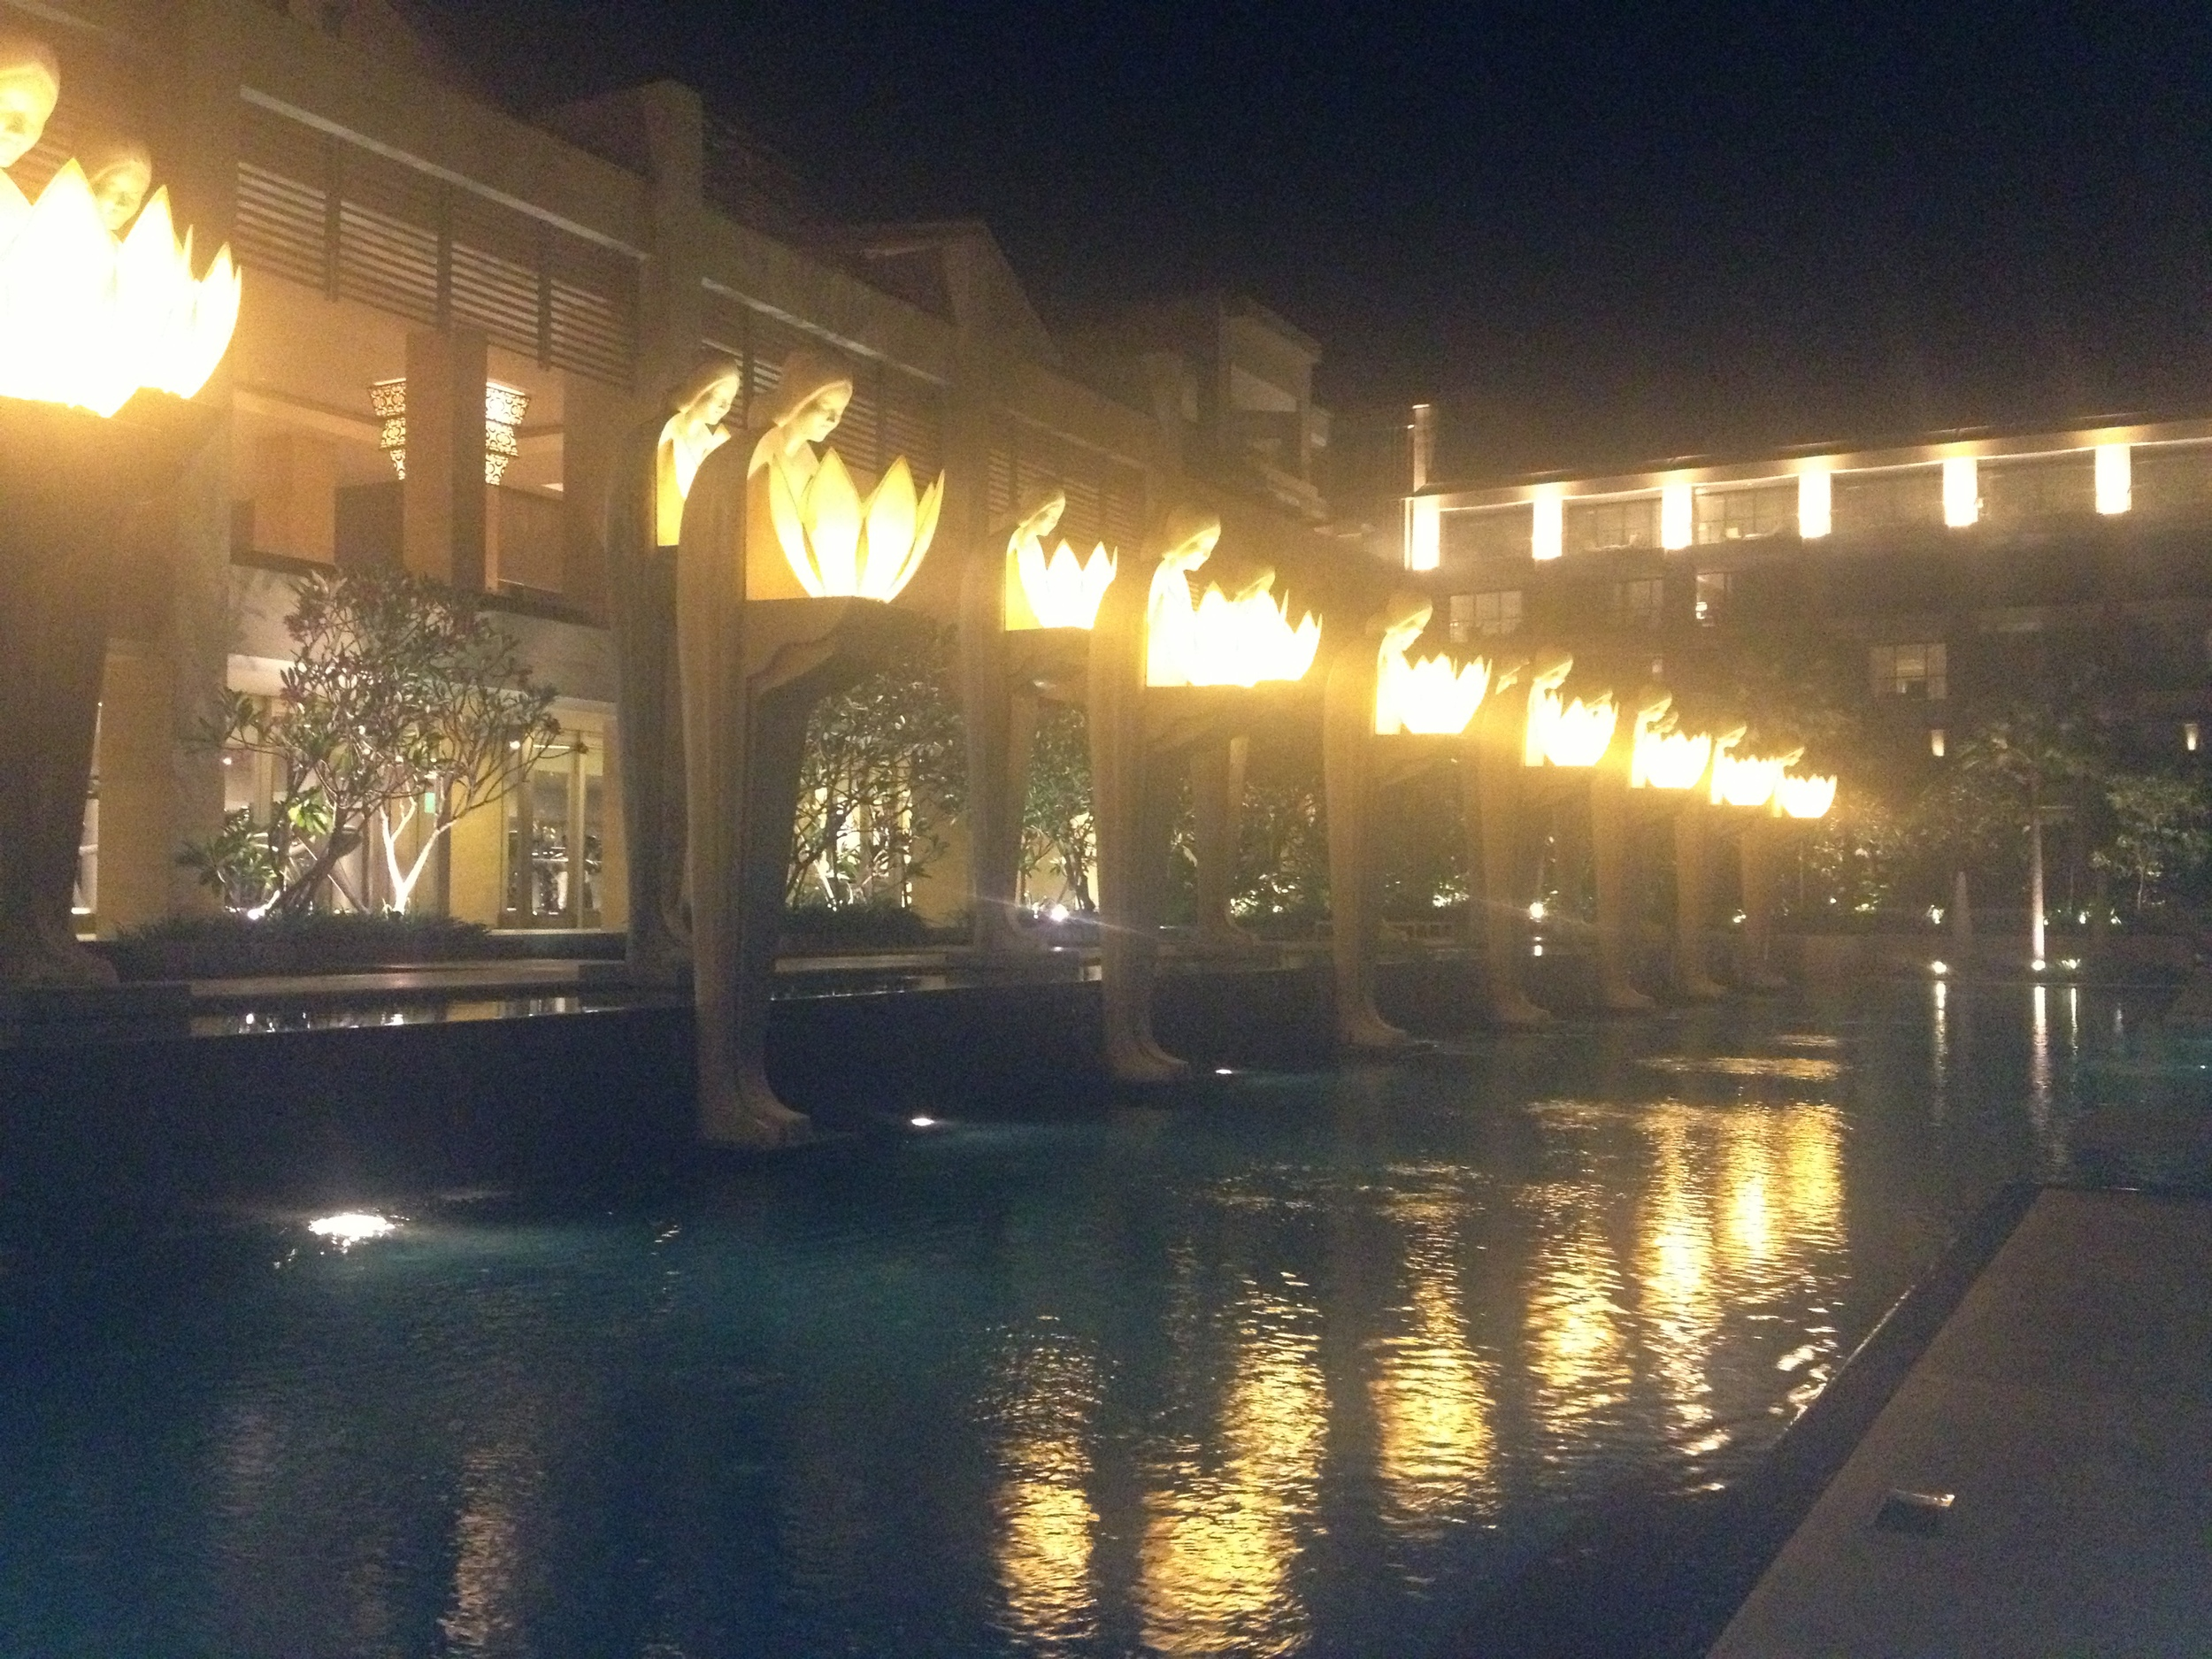 Our second hotel - The Mulia.